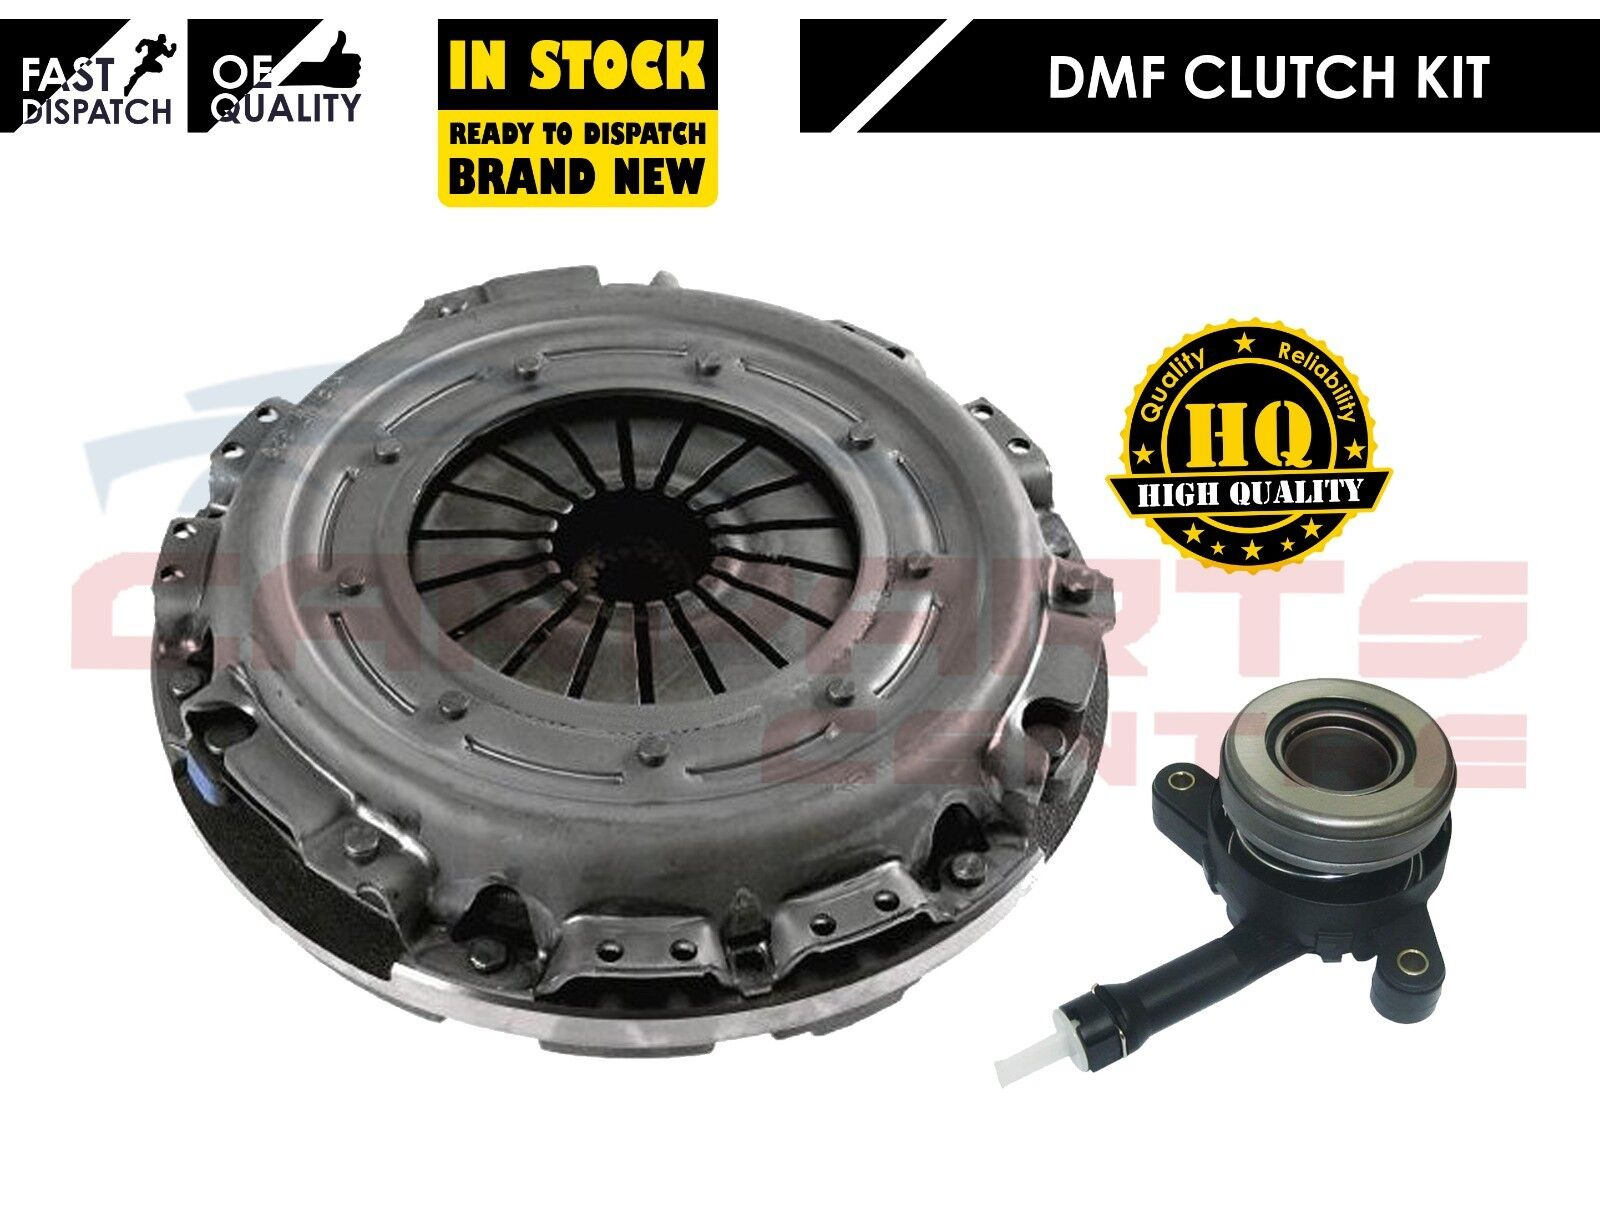 Clutch Replacement 2008 Jeep Patriot Installation Dual Mass Flywheel And Kit For Compass Dodge 1600x1205